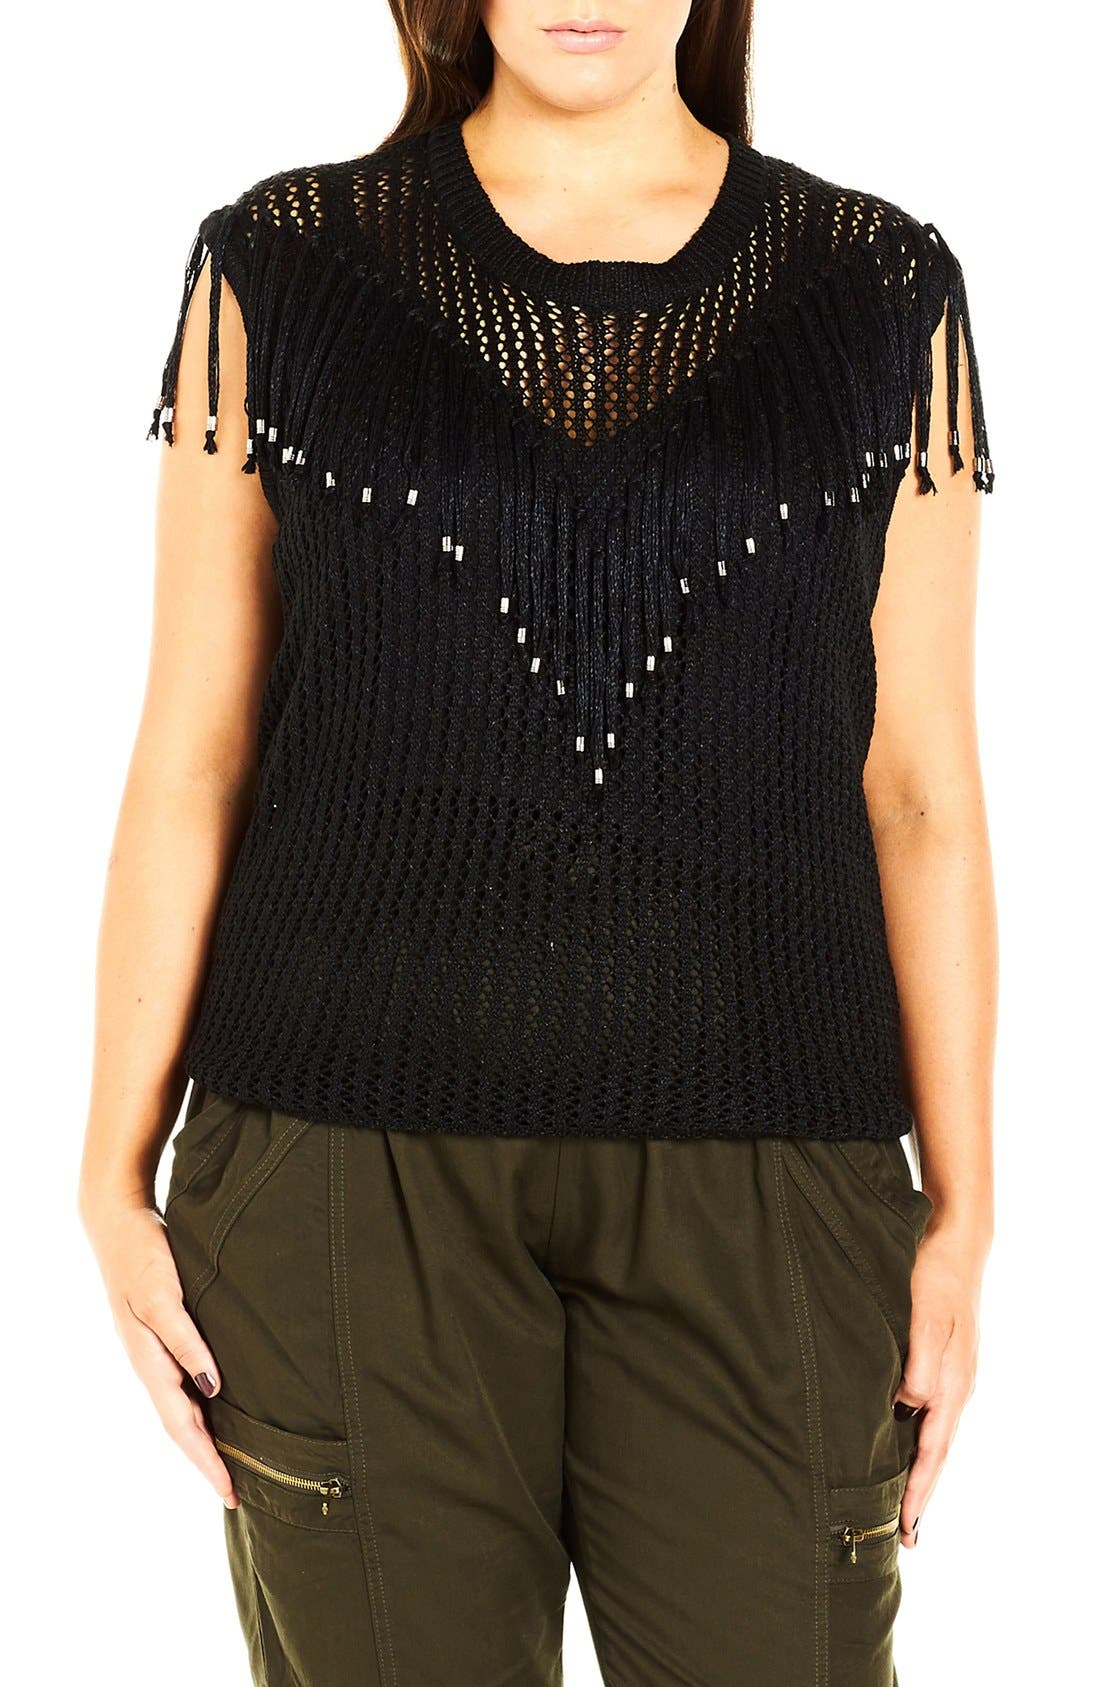 City Chic 'Fringe Fever' Sleeveless Sweater (Plus Size)